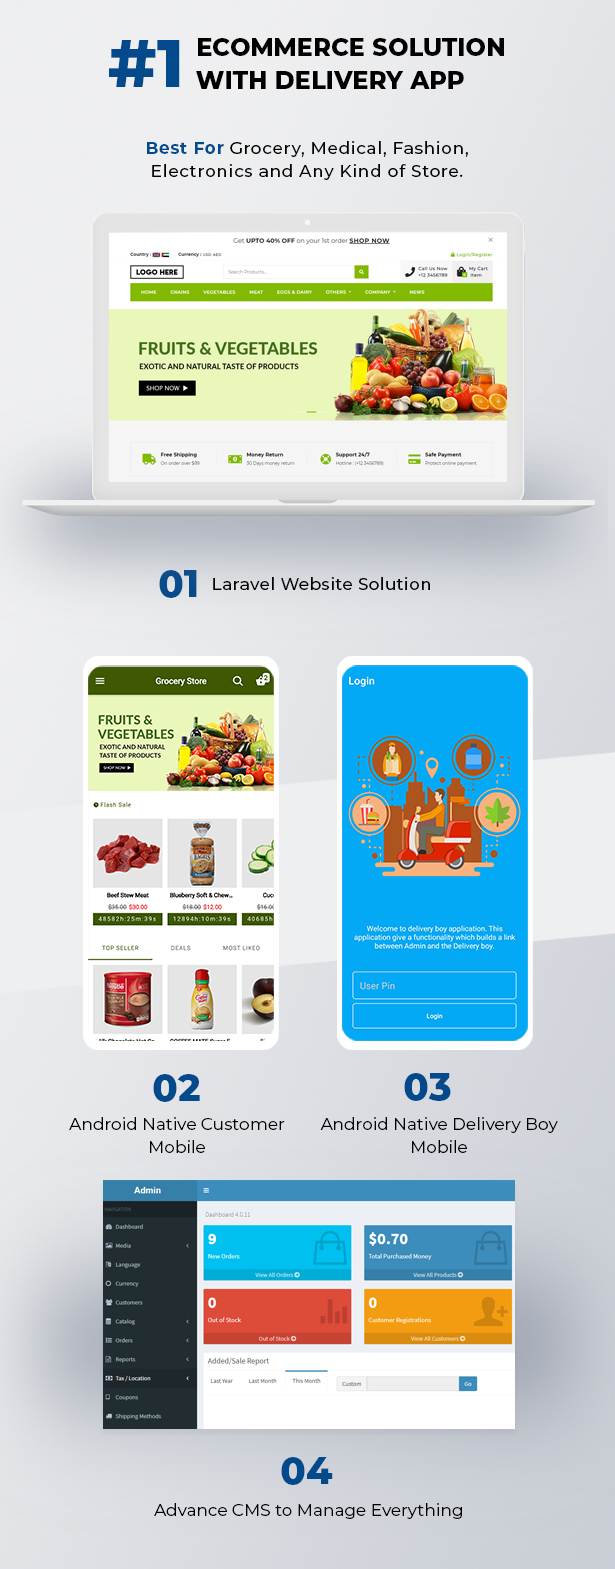 Ecommerce Solution with Delivery App For Grocery, Food, Pharmacy, Any Store / Laravel + Android Apps - 2